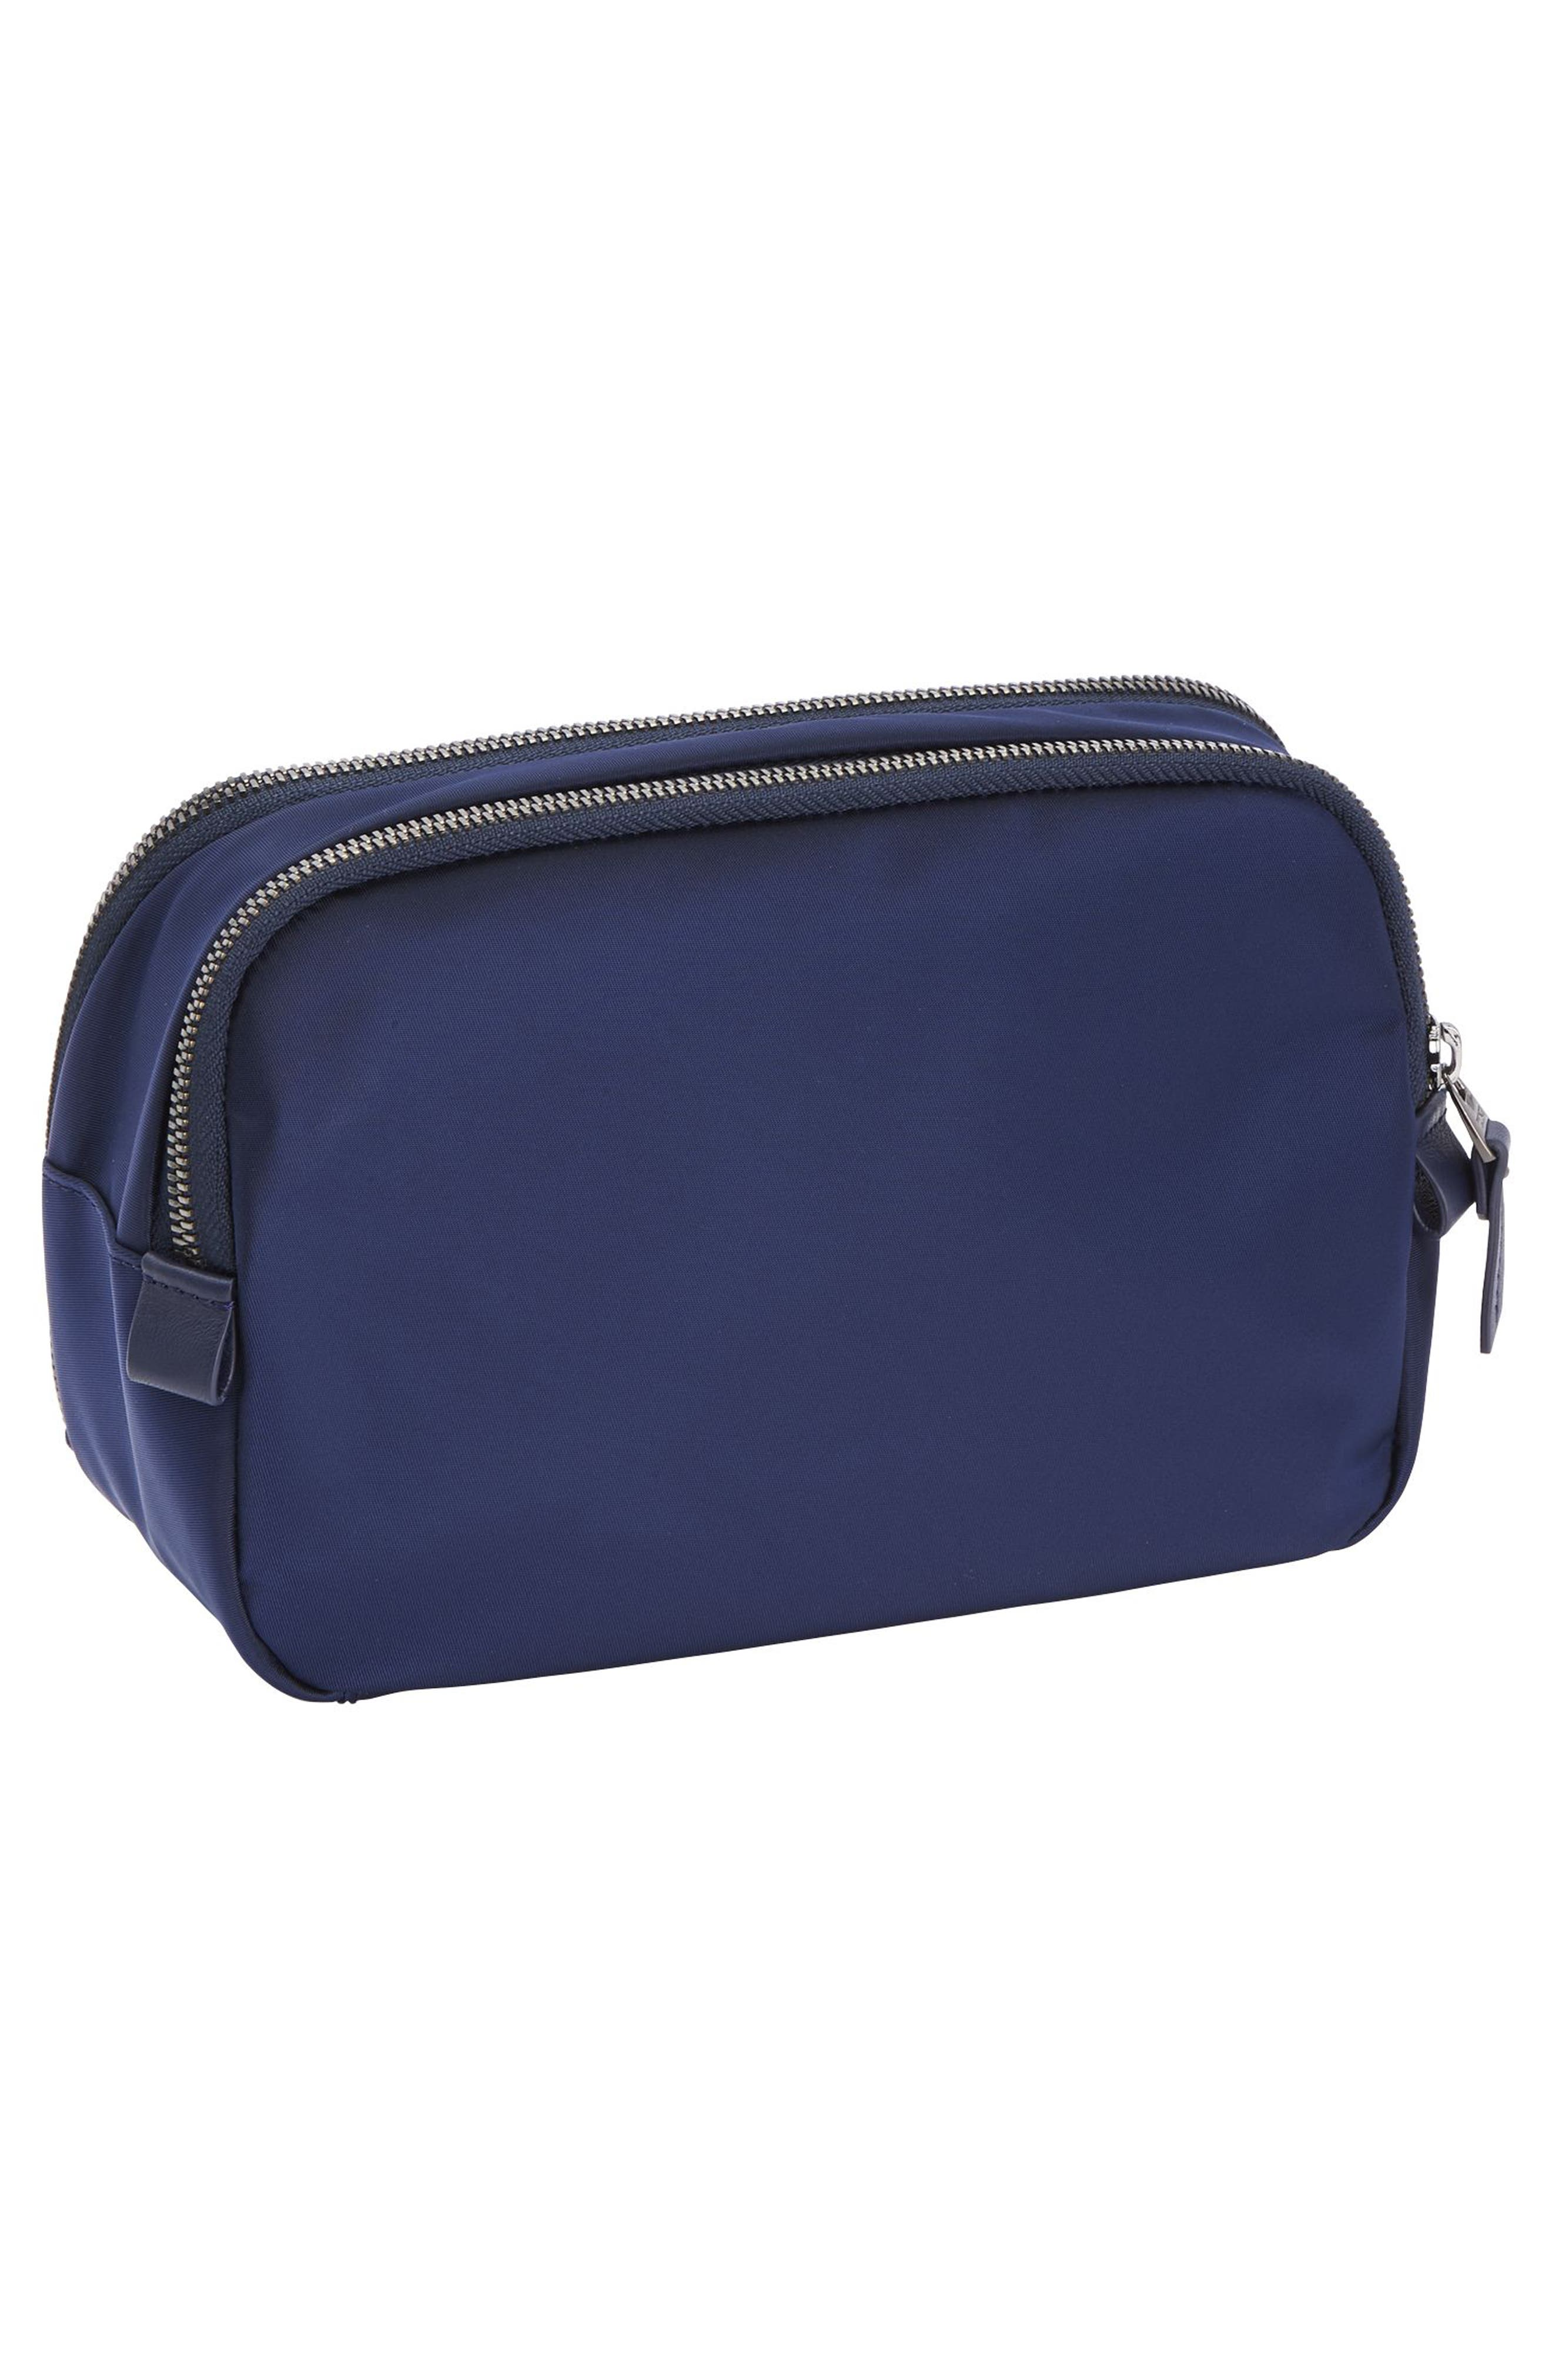 Alternate Image 2  - Tumi Lesley Cosmetics Case